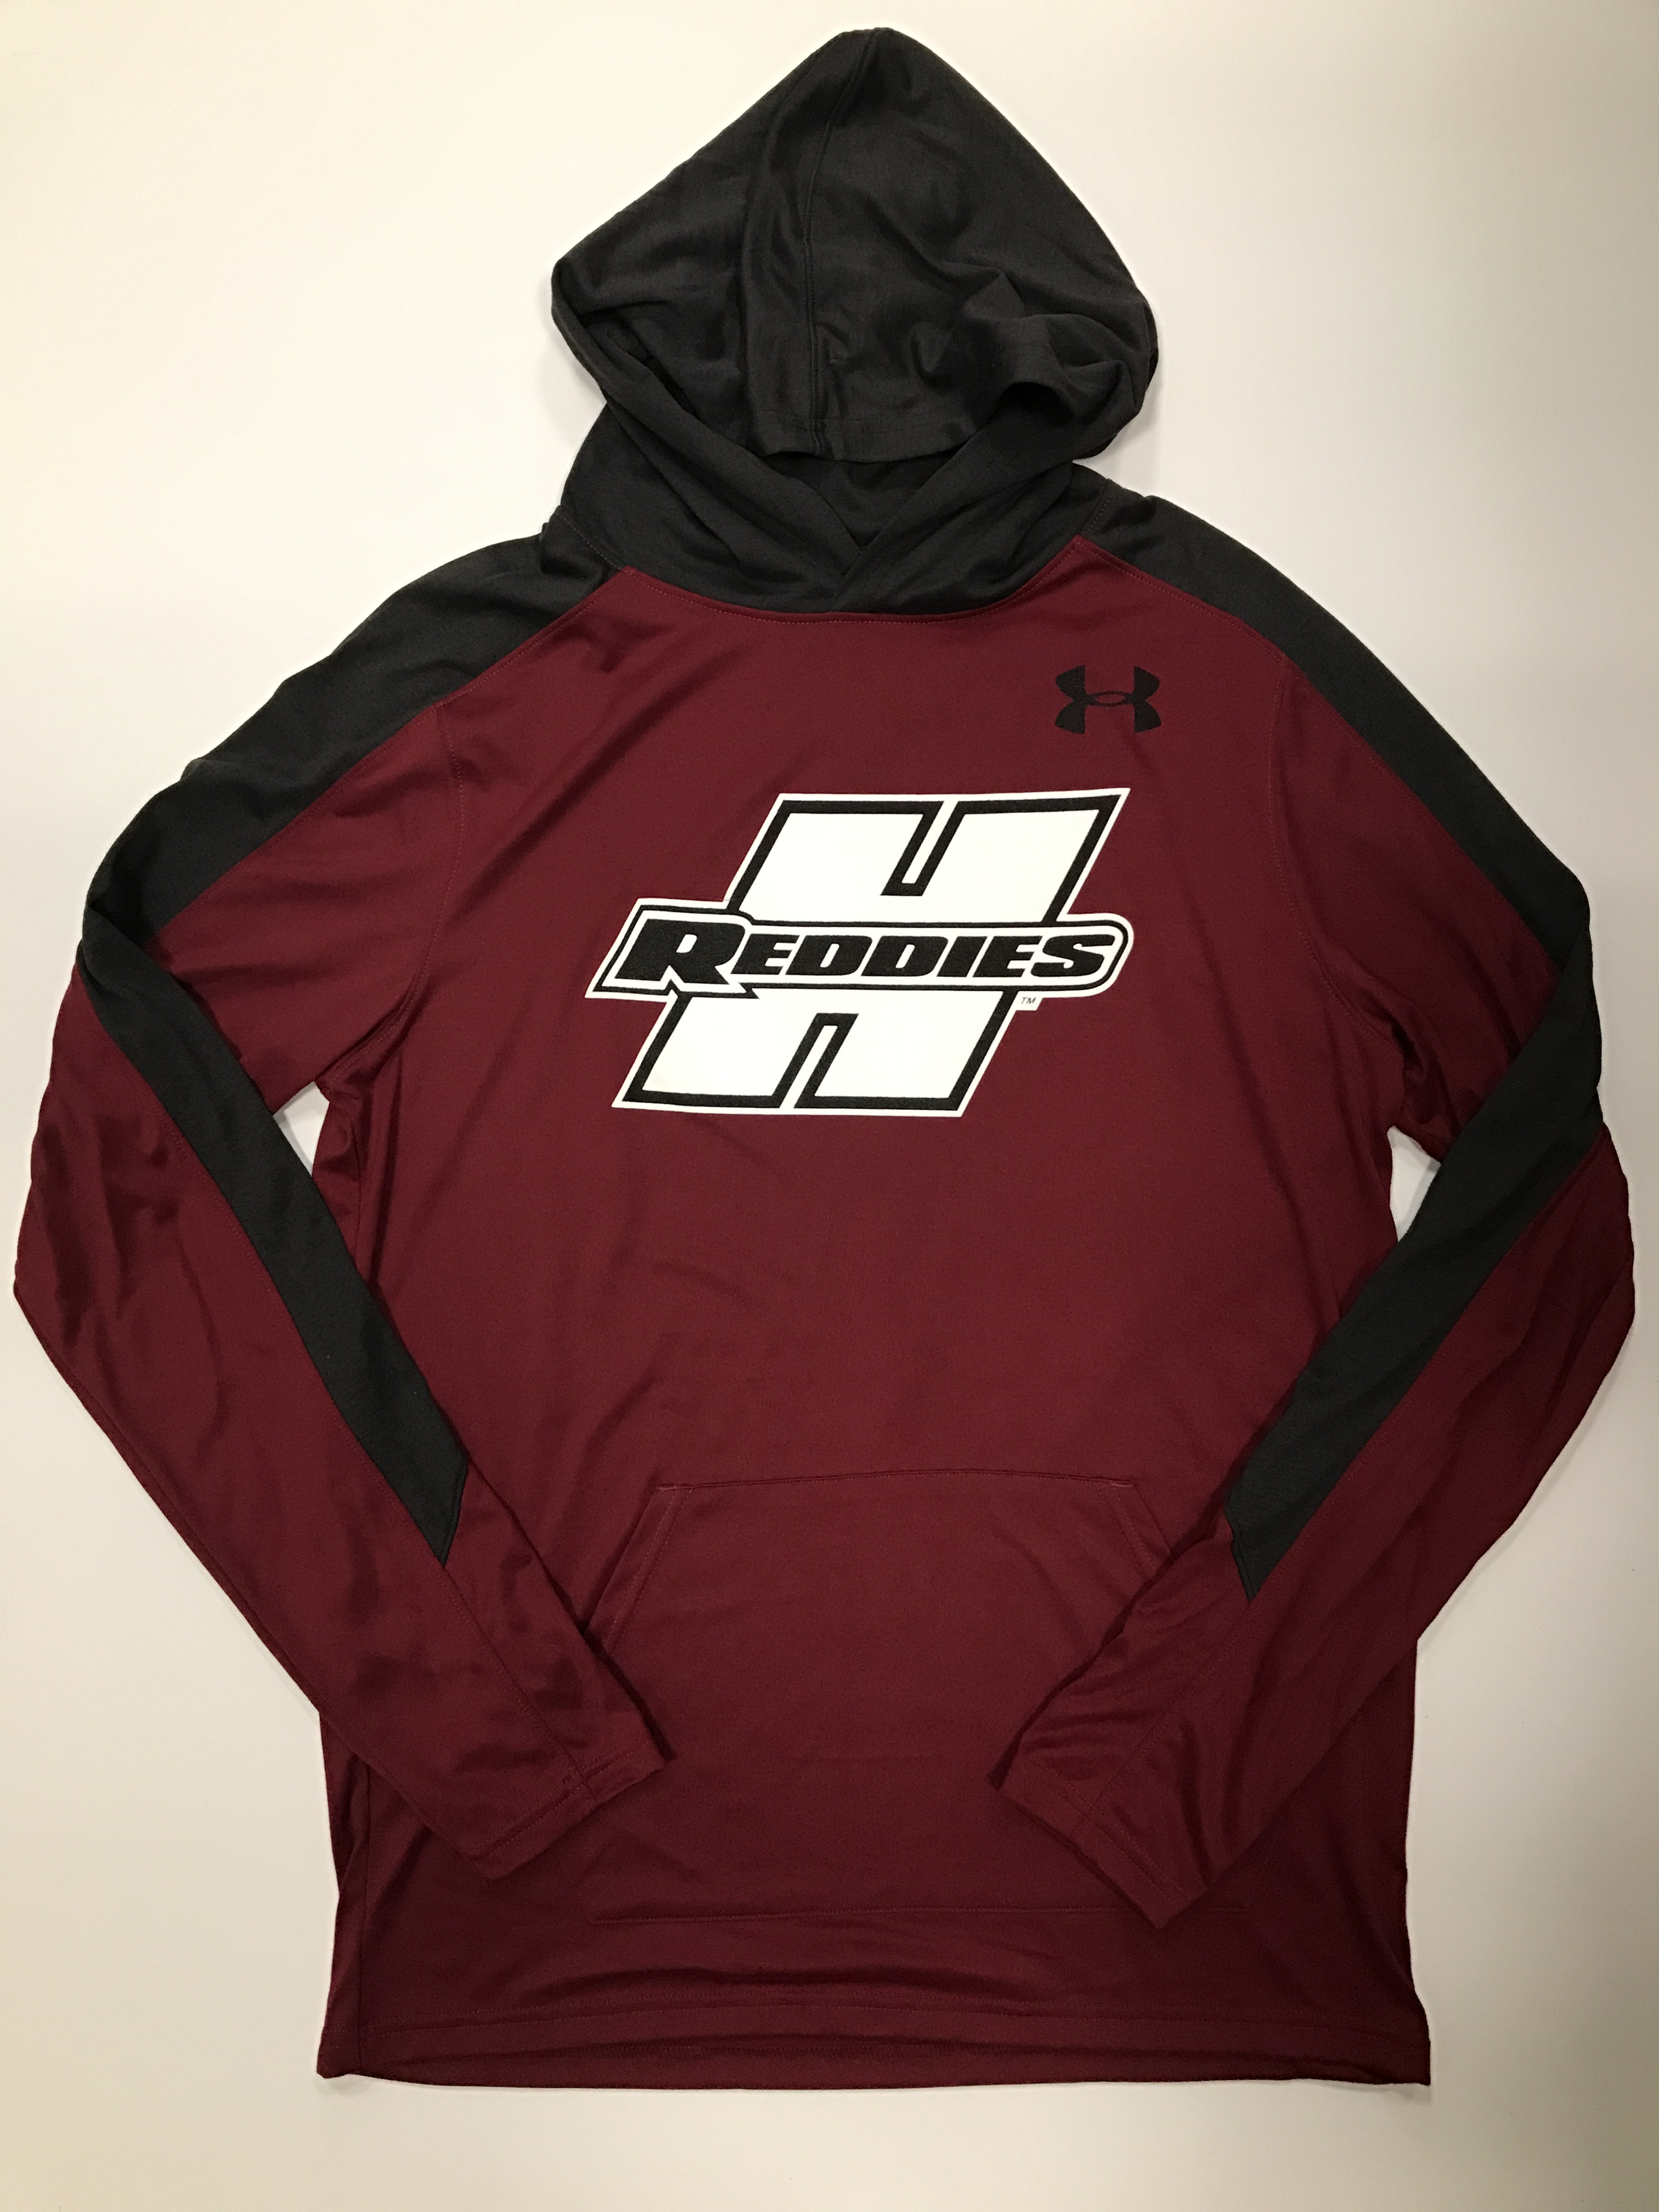 Under Armour Hooded Shirt